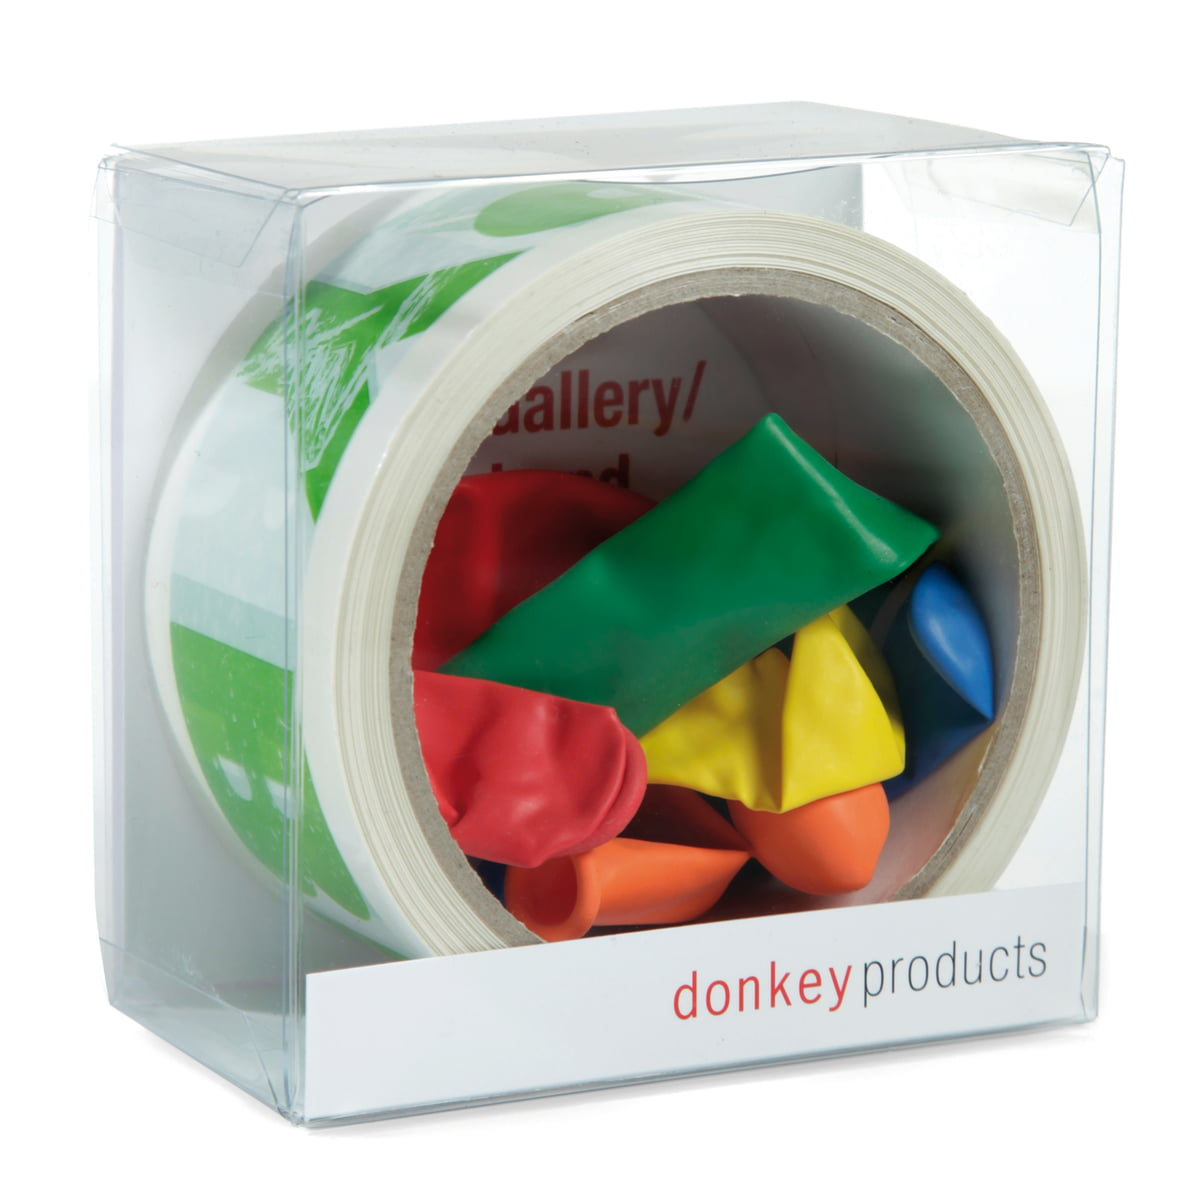 donkey products tape gallery birthday meter. Black Bedroom Furniture Sets. Home Design Ideas